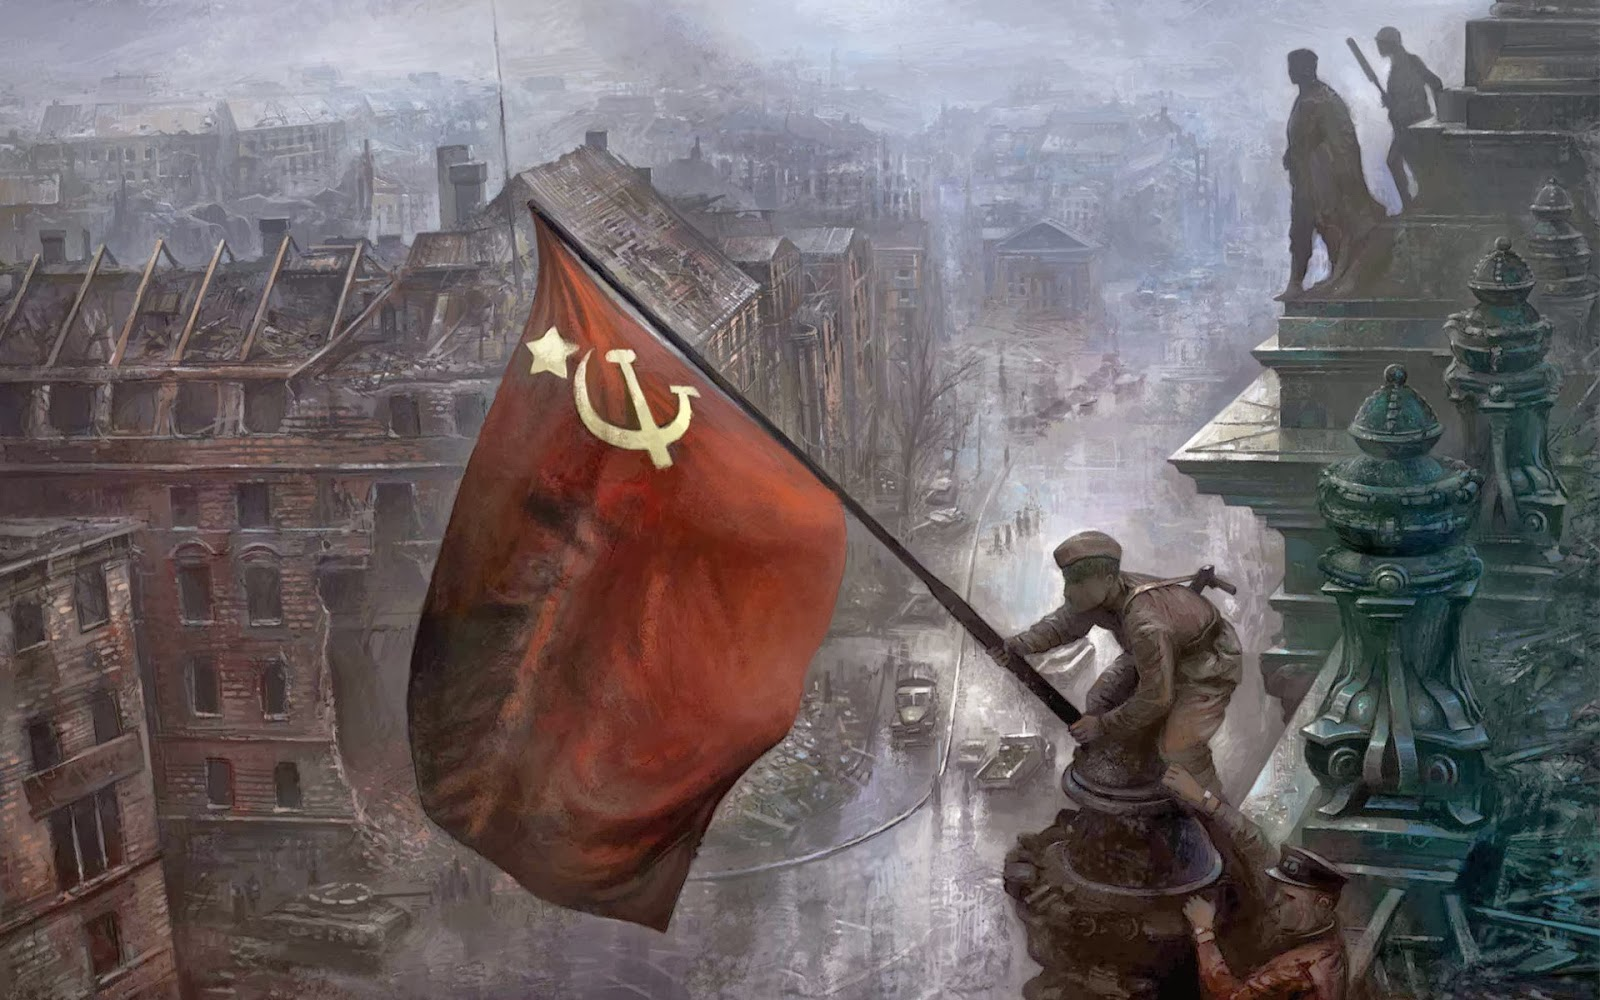 Soldiers+raising+the+Soviet+flag+over+th